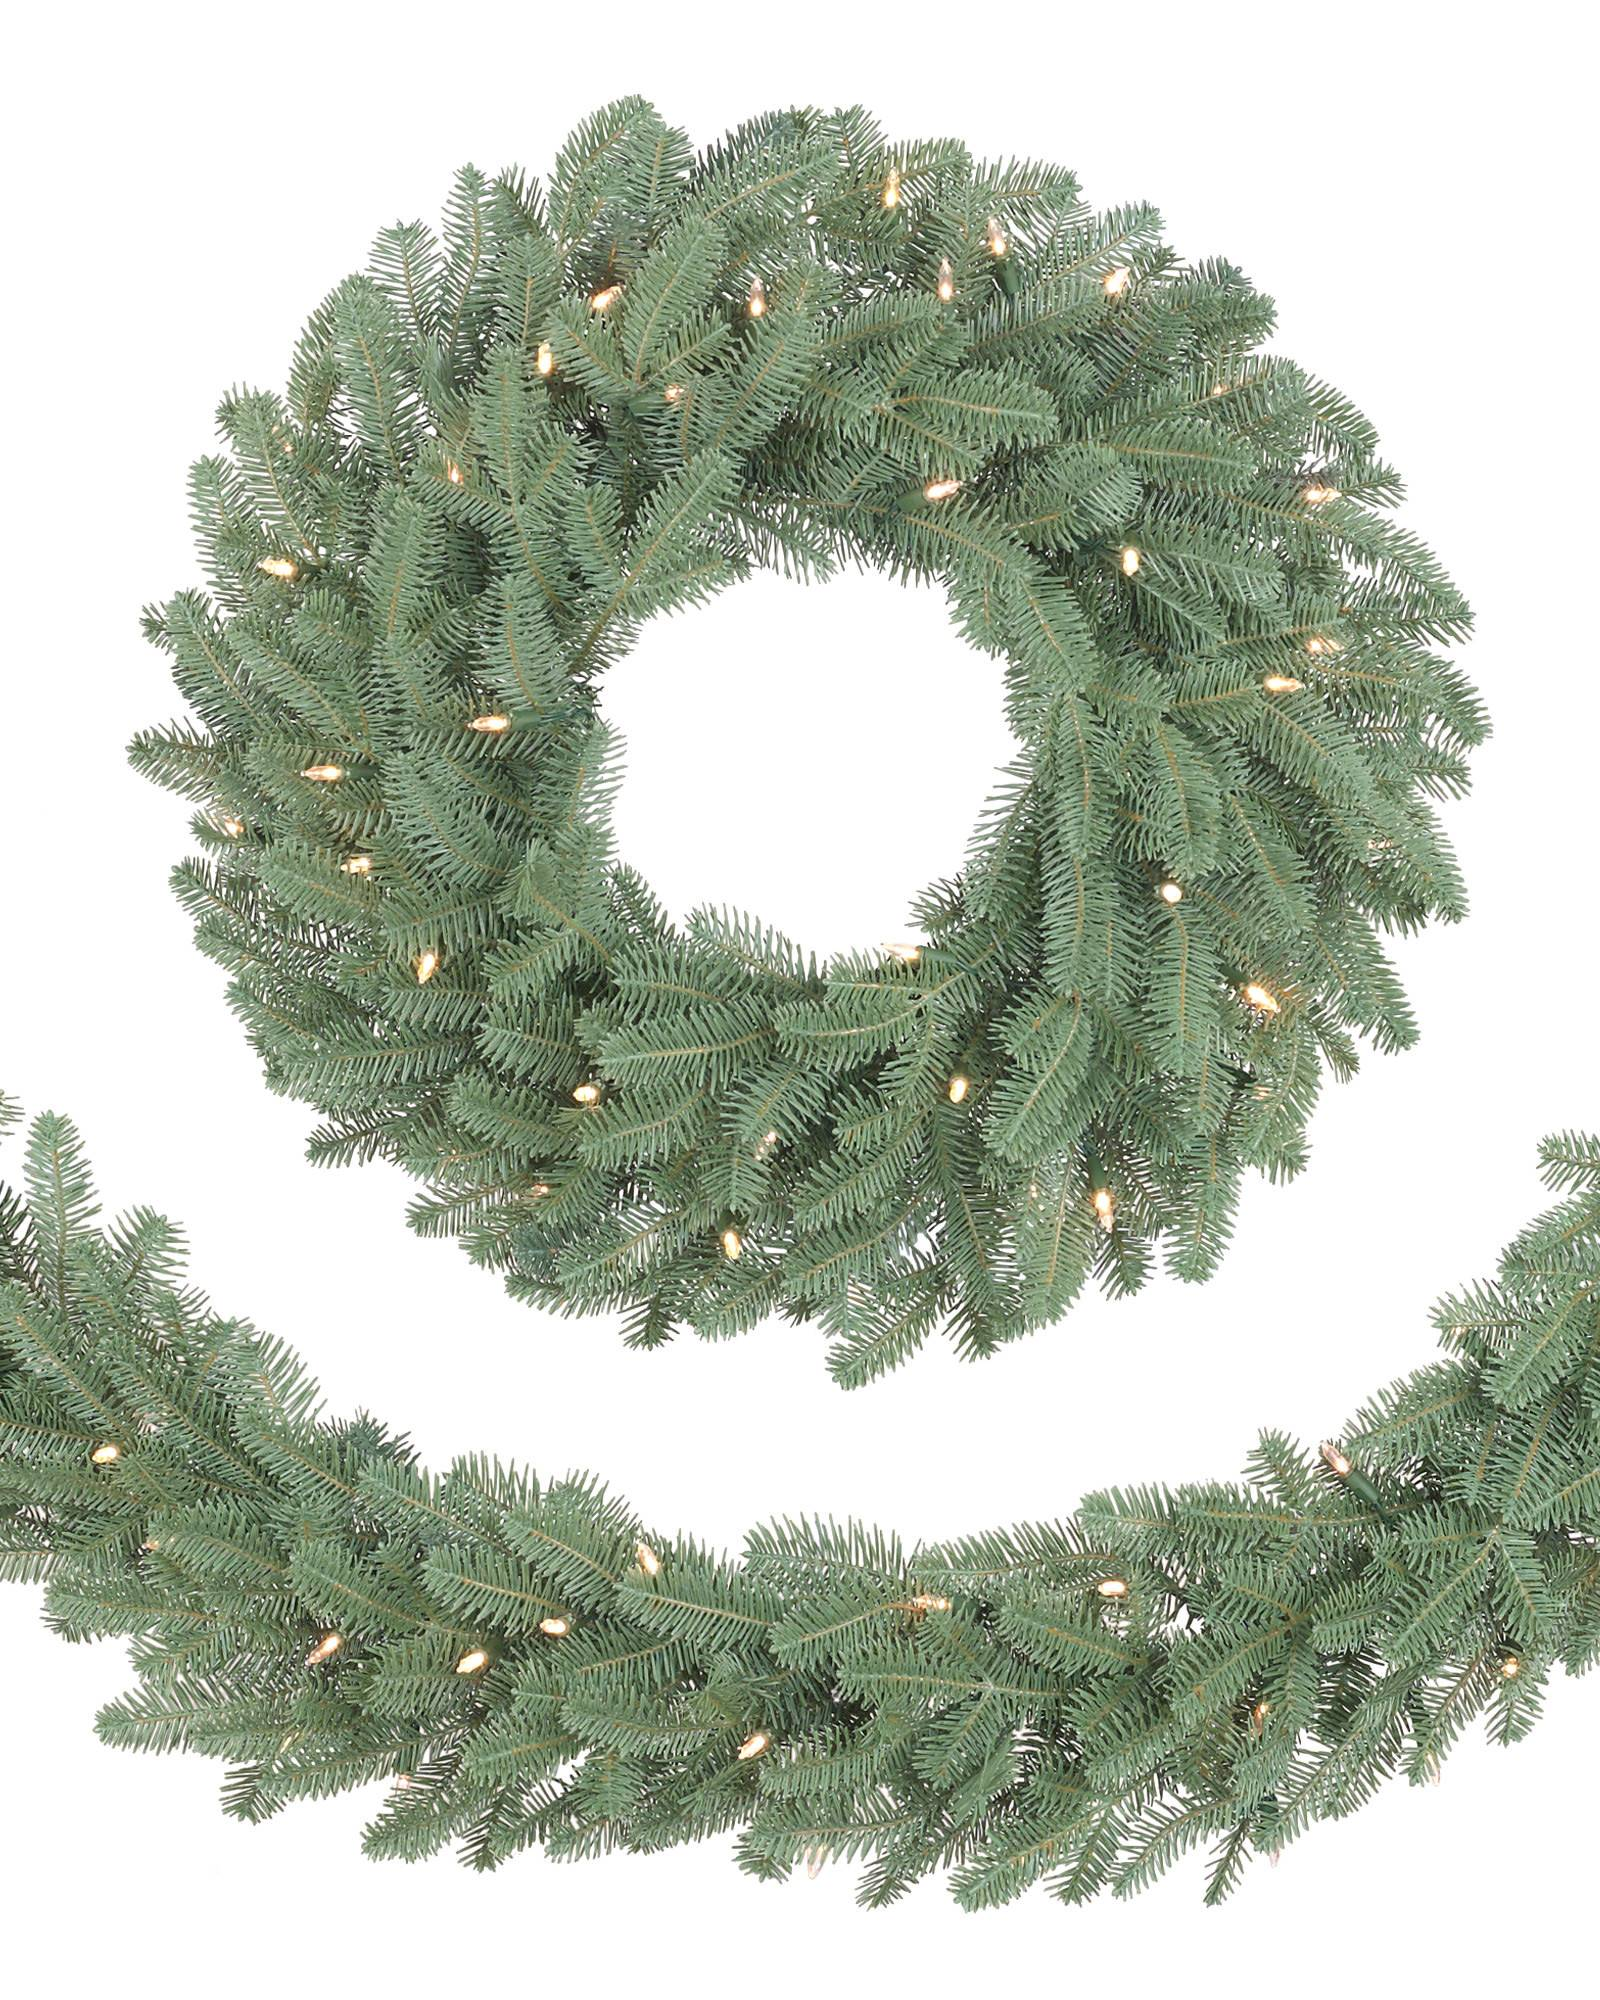 bh balsam fir garland main - Artificial Christmas Wreaths Decorated